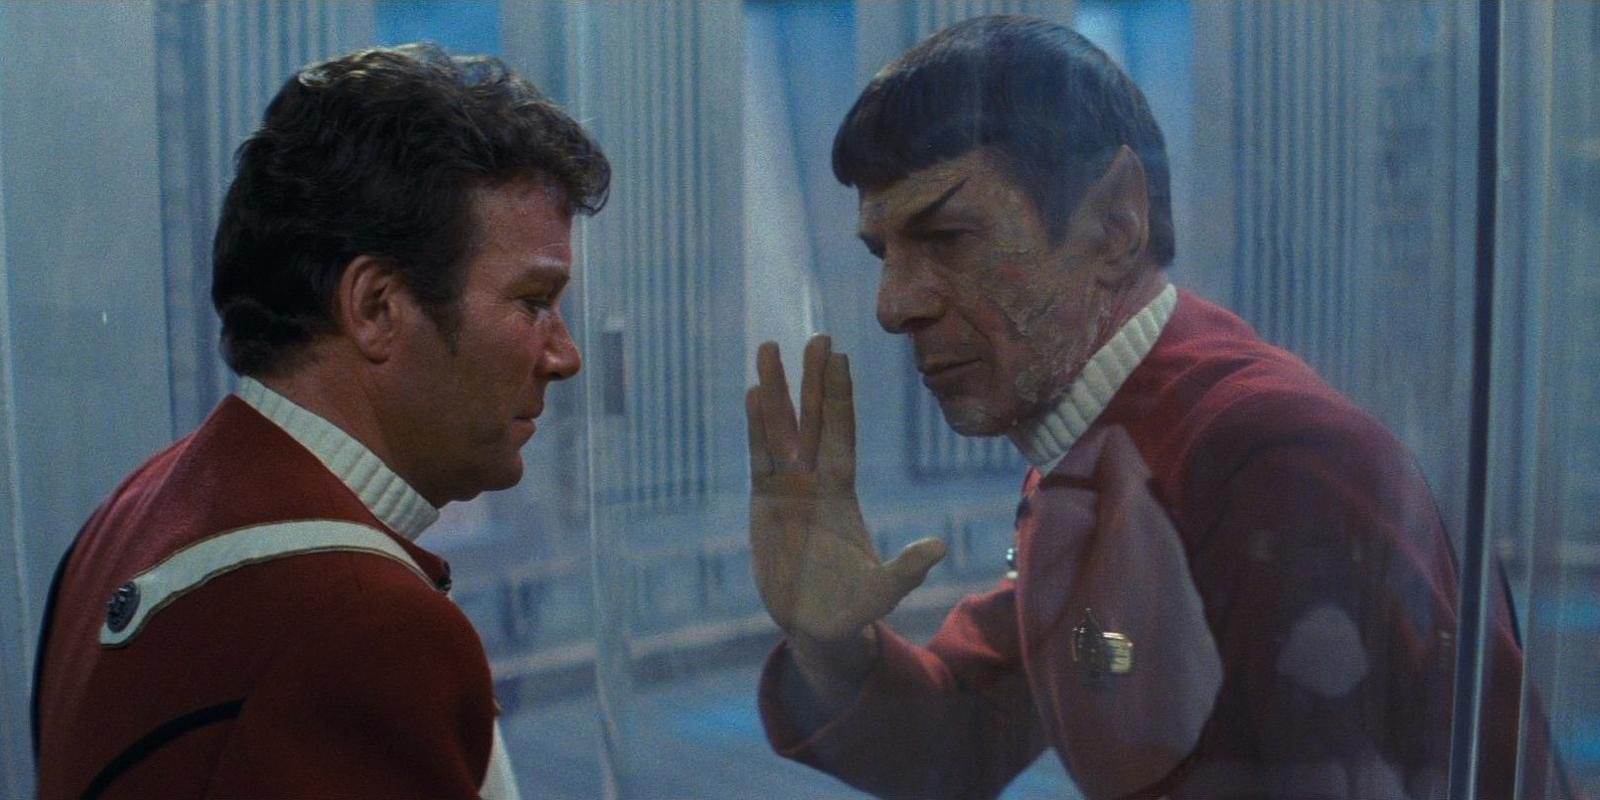 kirk-spock-death-scene-star-trek-ii-the-wrath-of-khan